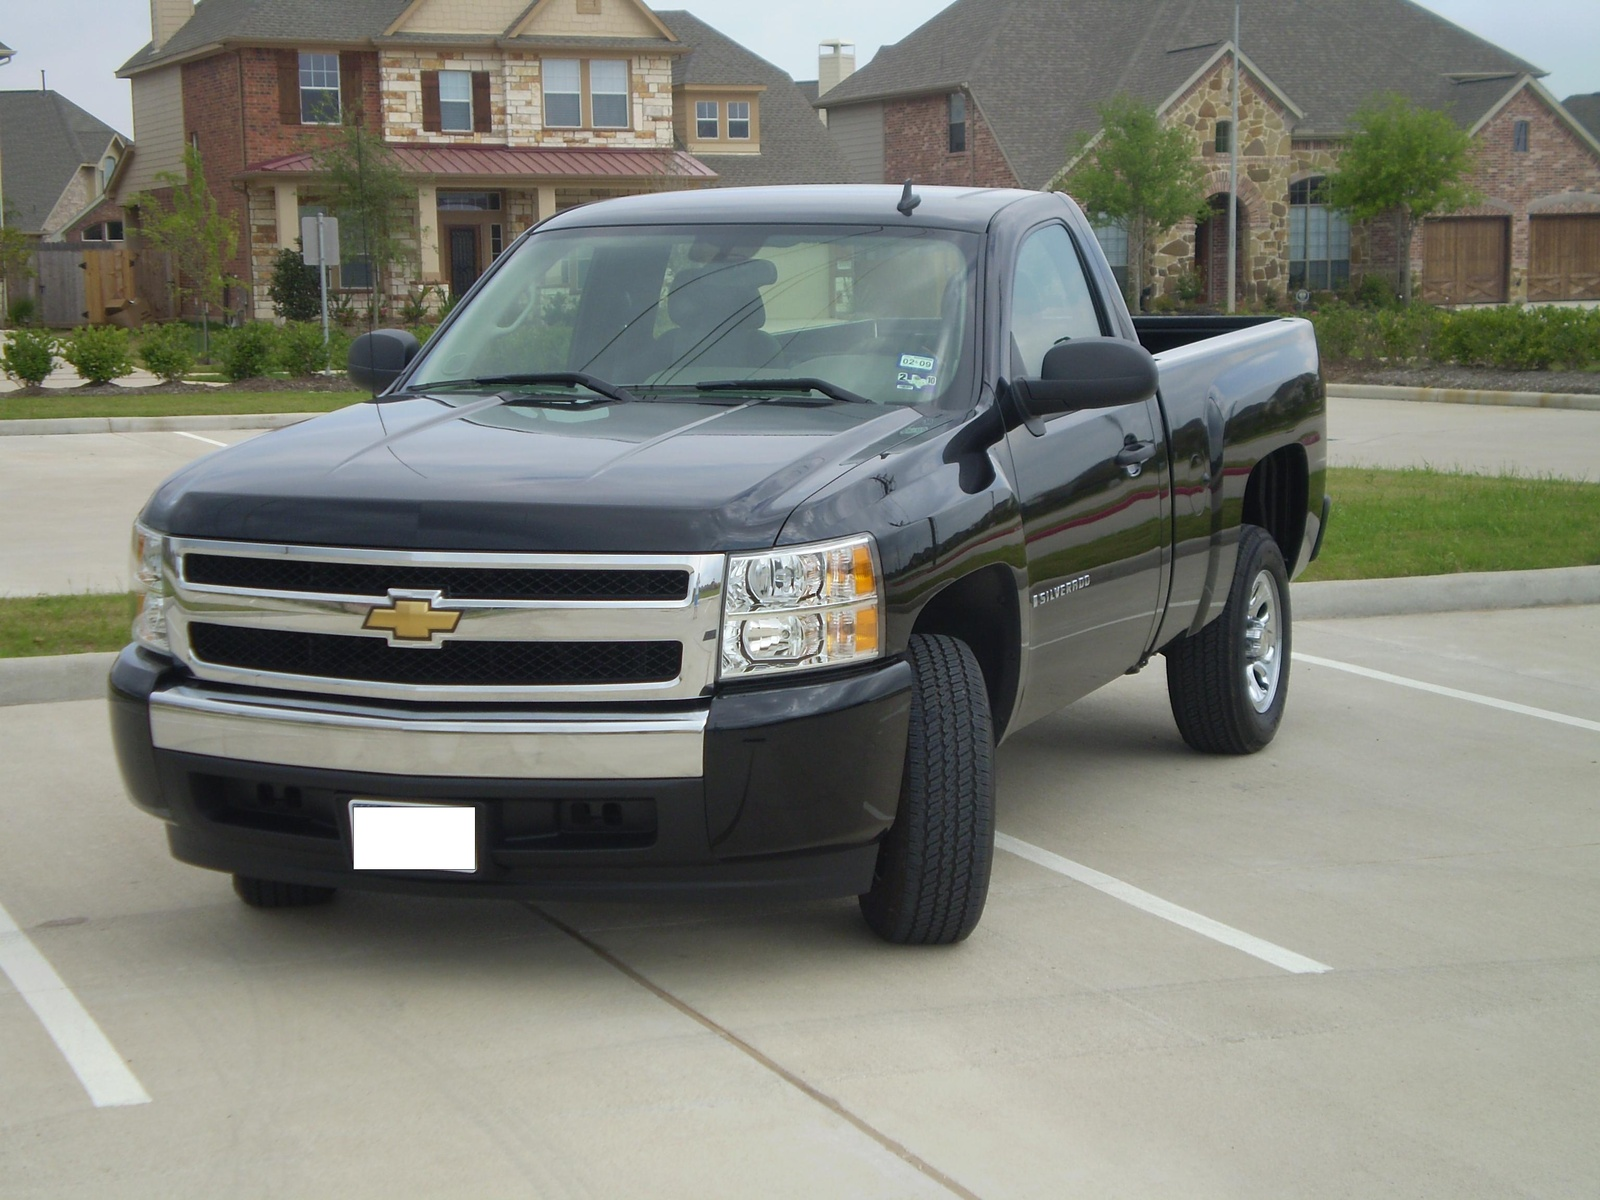 2008 chevrolet silverado 1500 information and photos momentcar. Black Bedroom Furniture Sets. Home Design Ideas